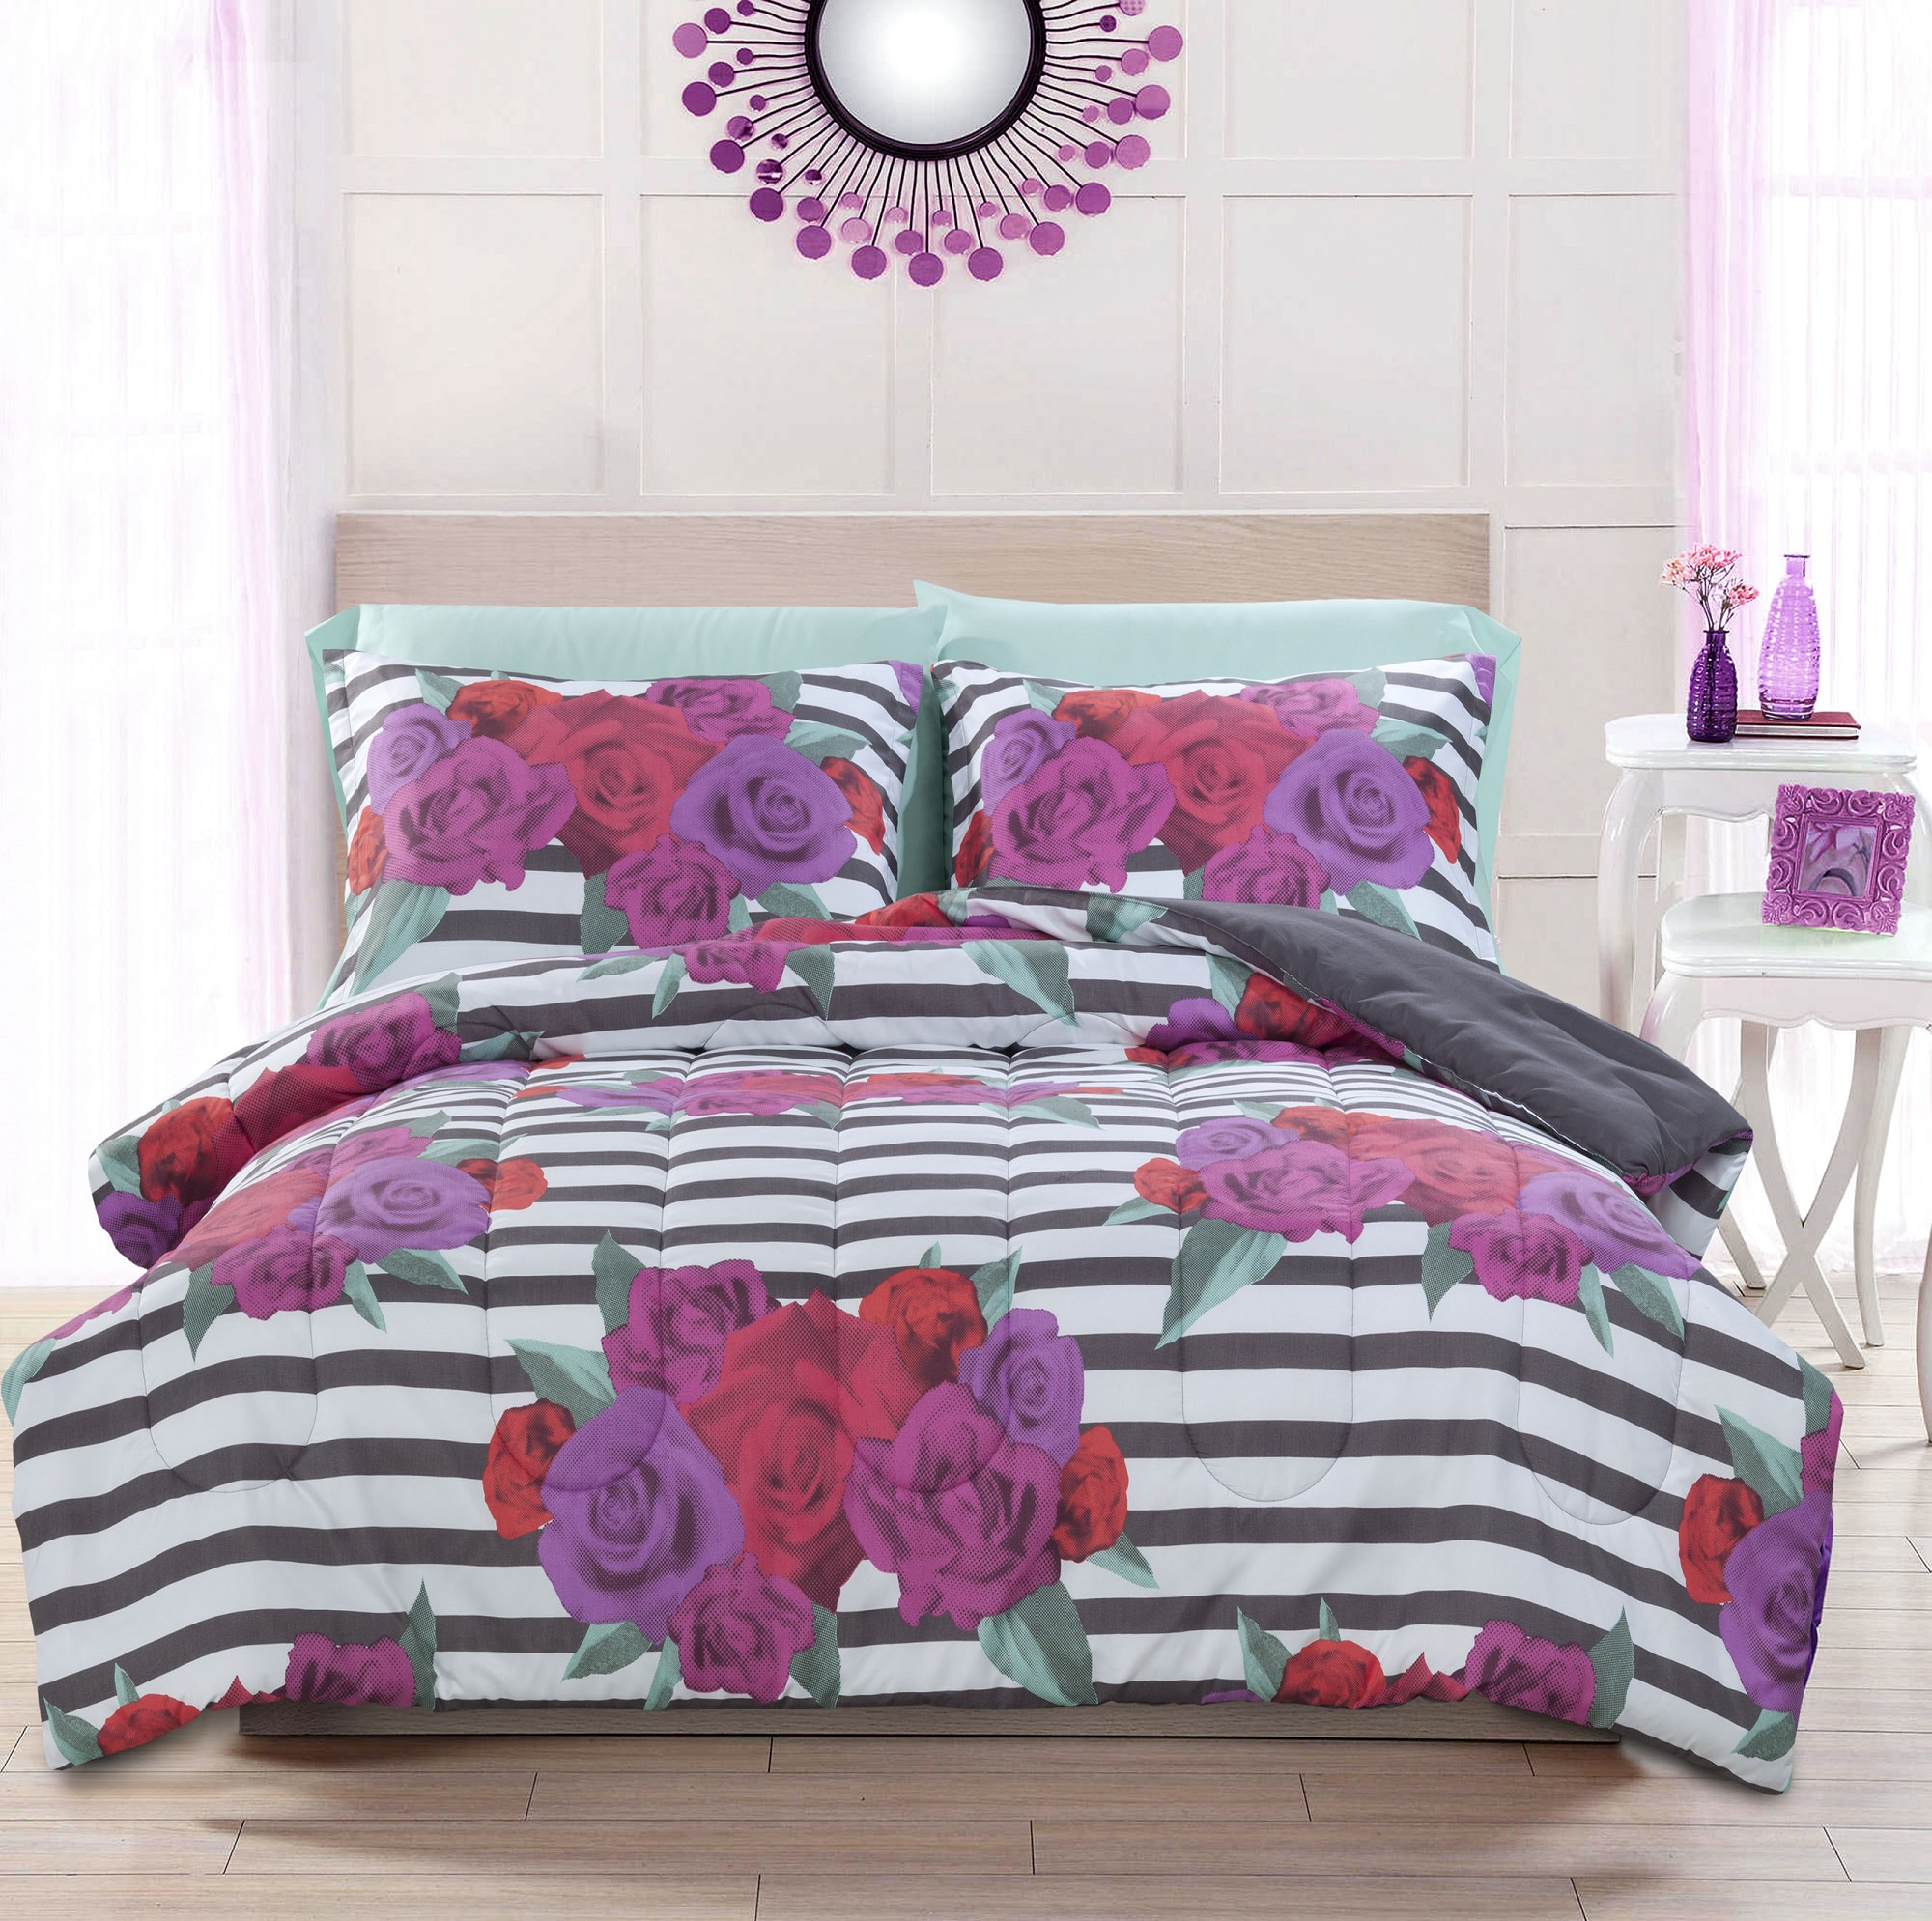 Mainstays Kids Rose Stripe 5 Piece Bed in a Bag